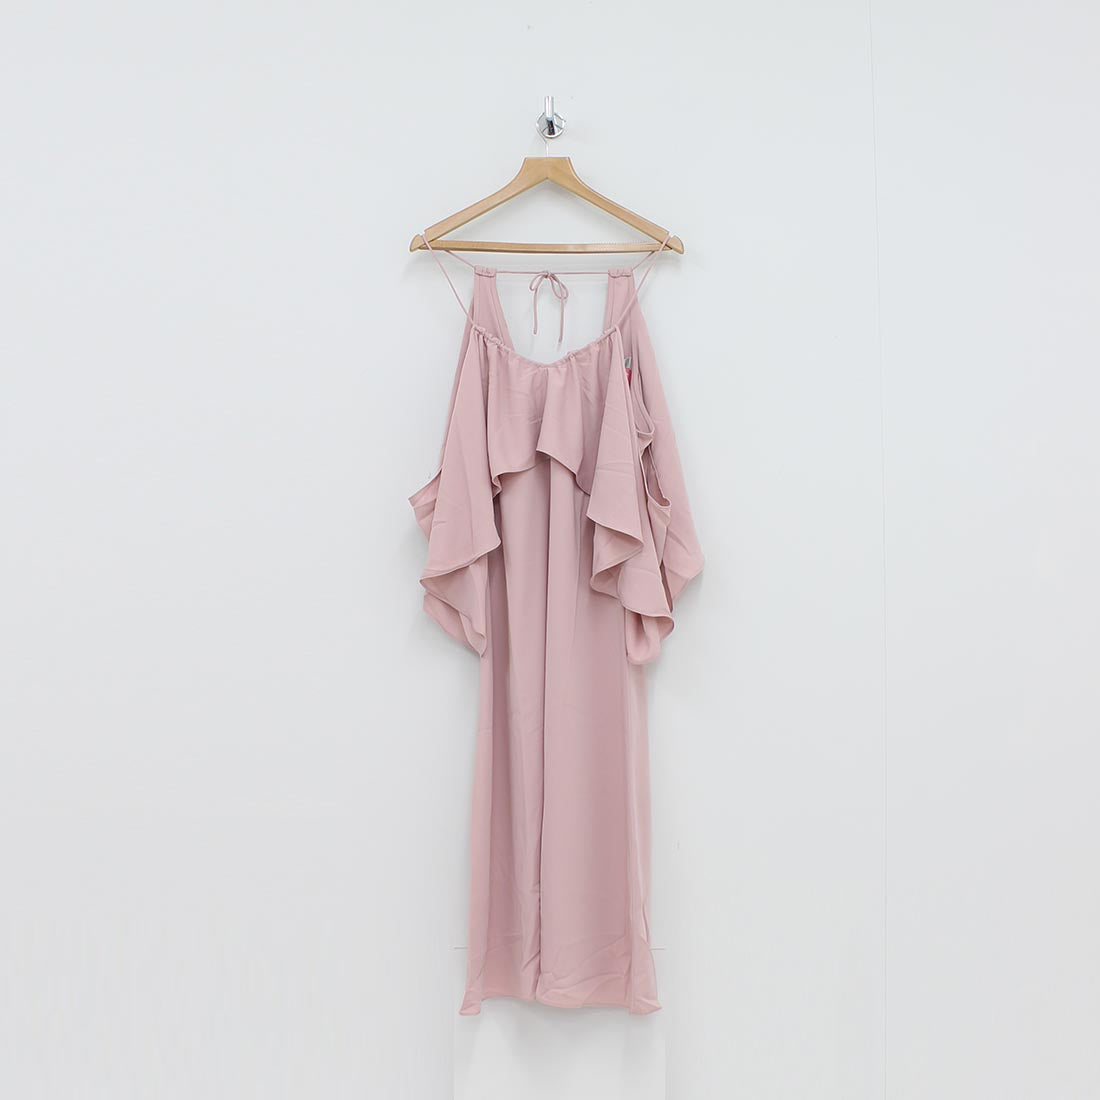 Jovanna Ronchi Dress Pink